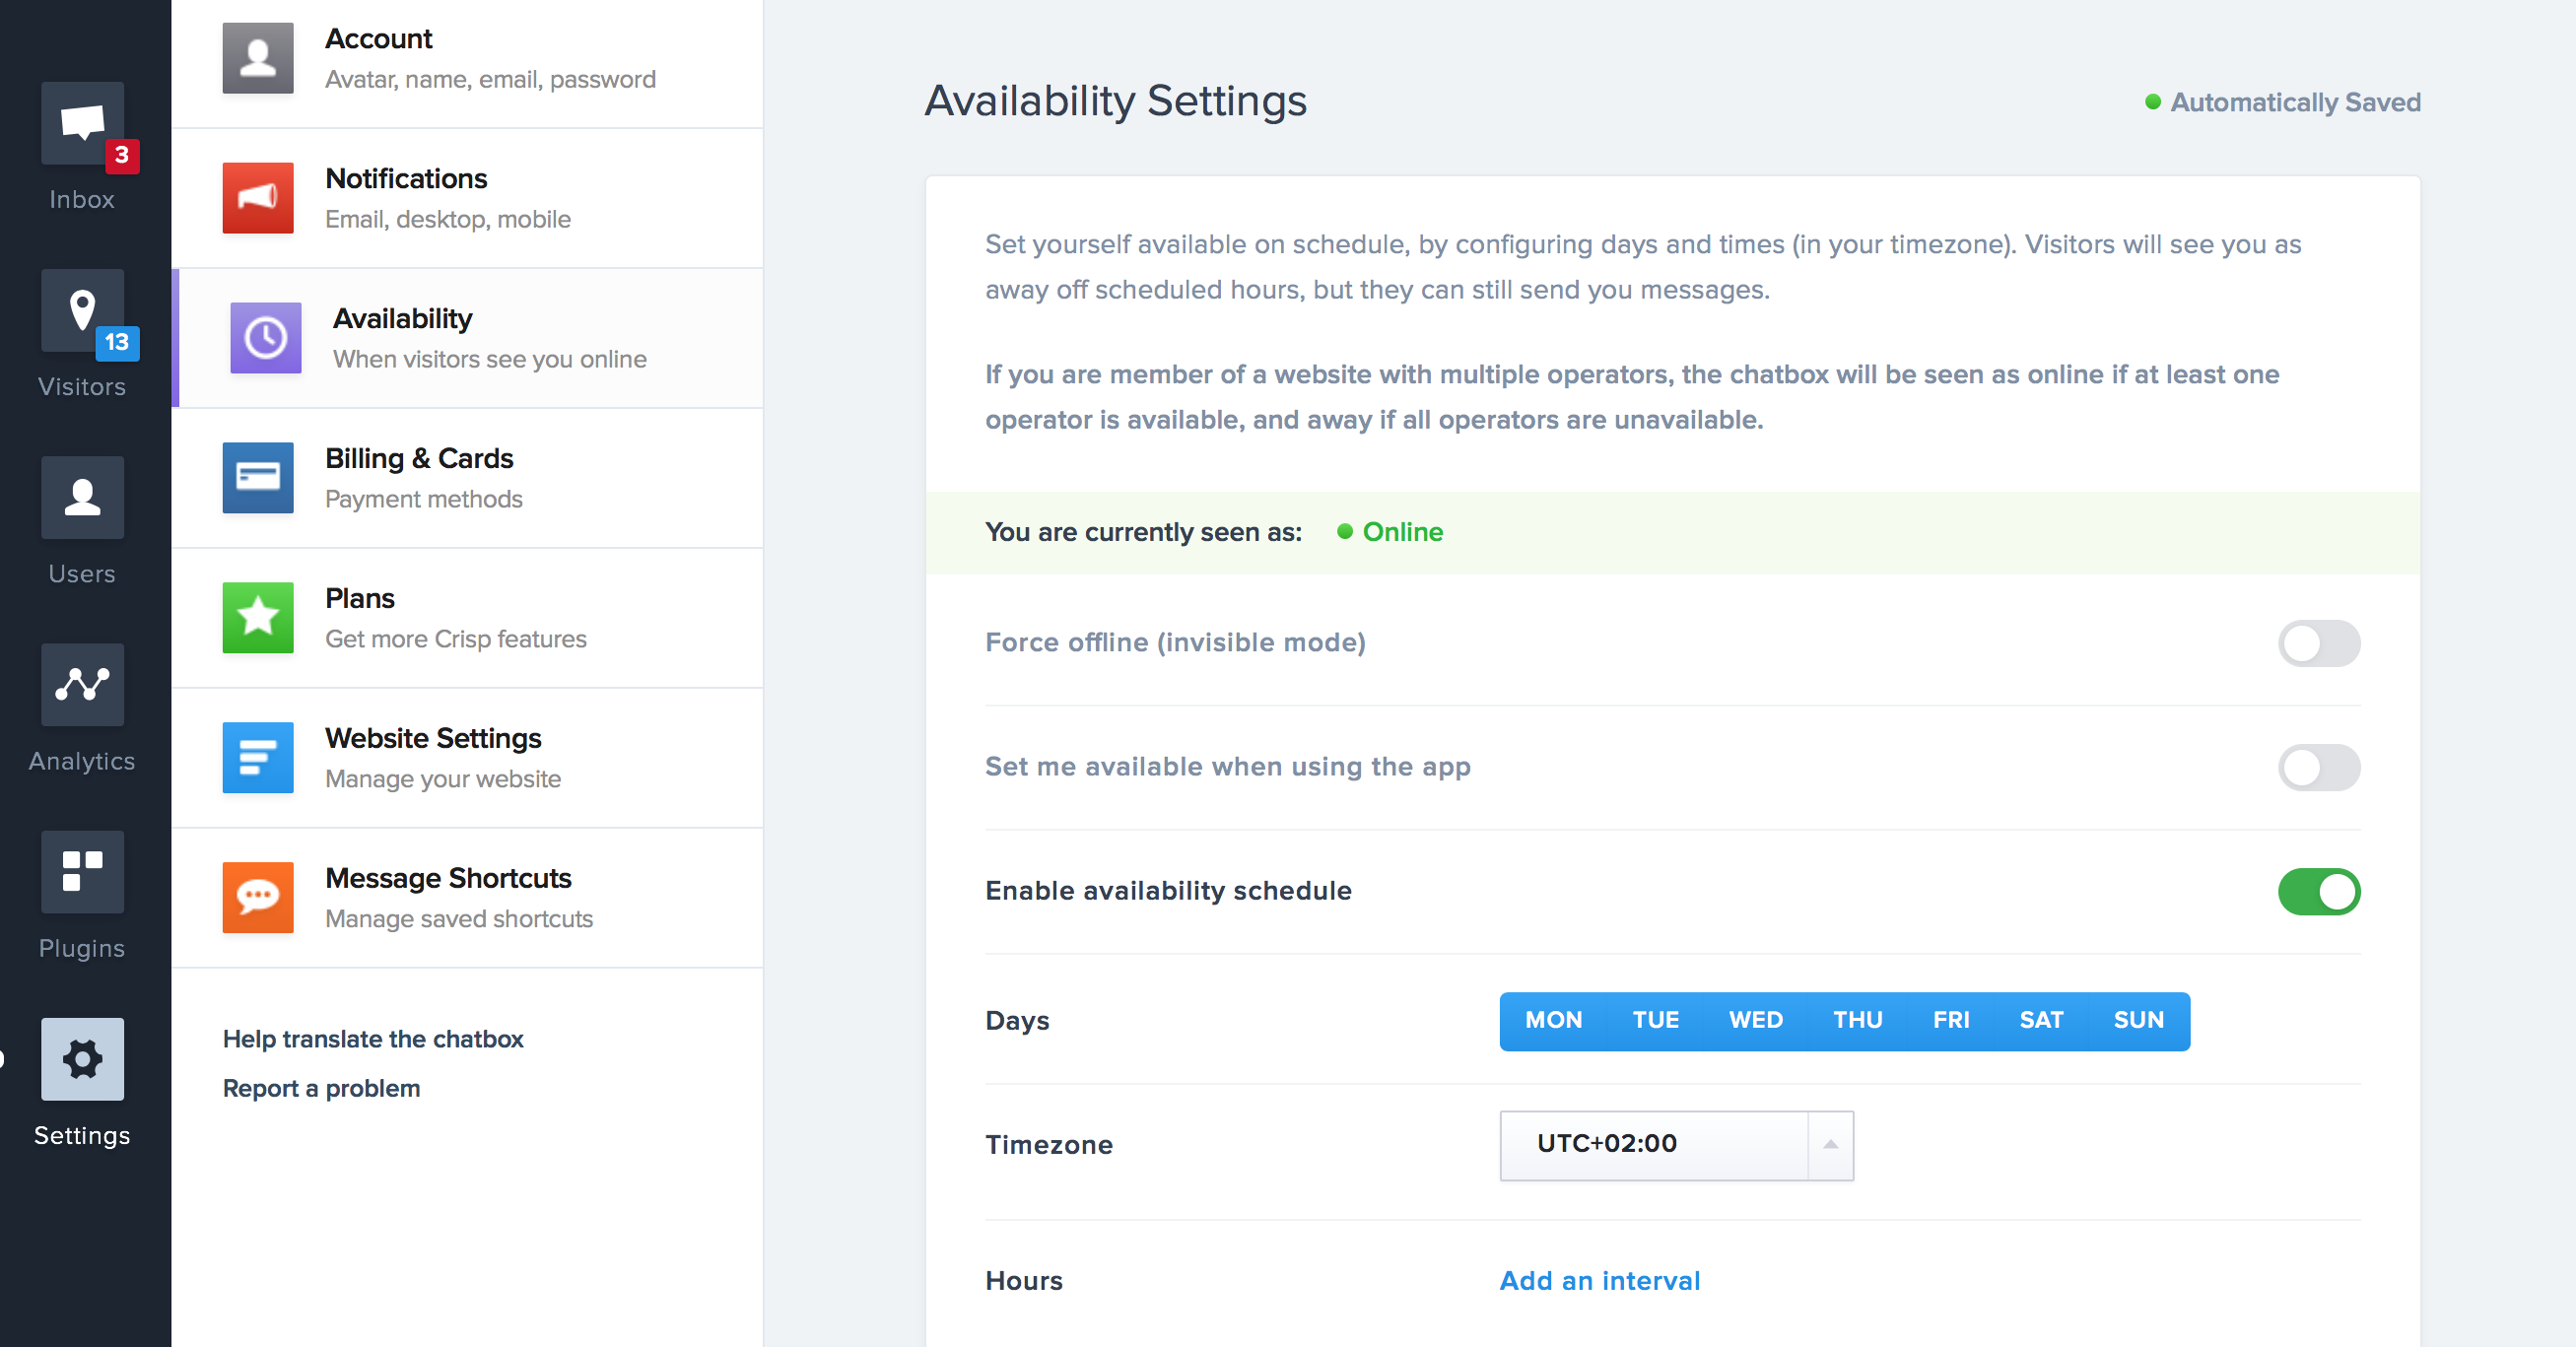 You can disable the online/offline automatic schedule in Availability schedule